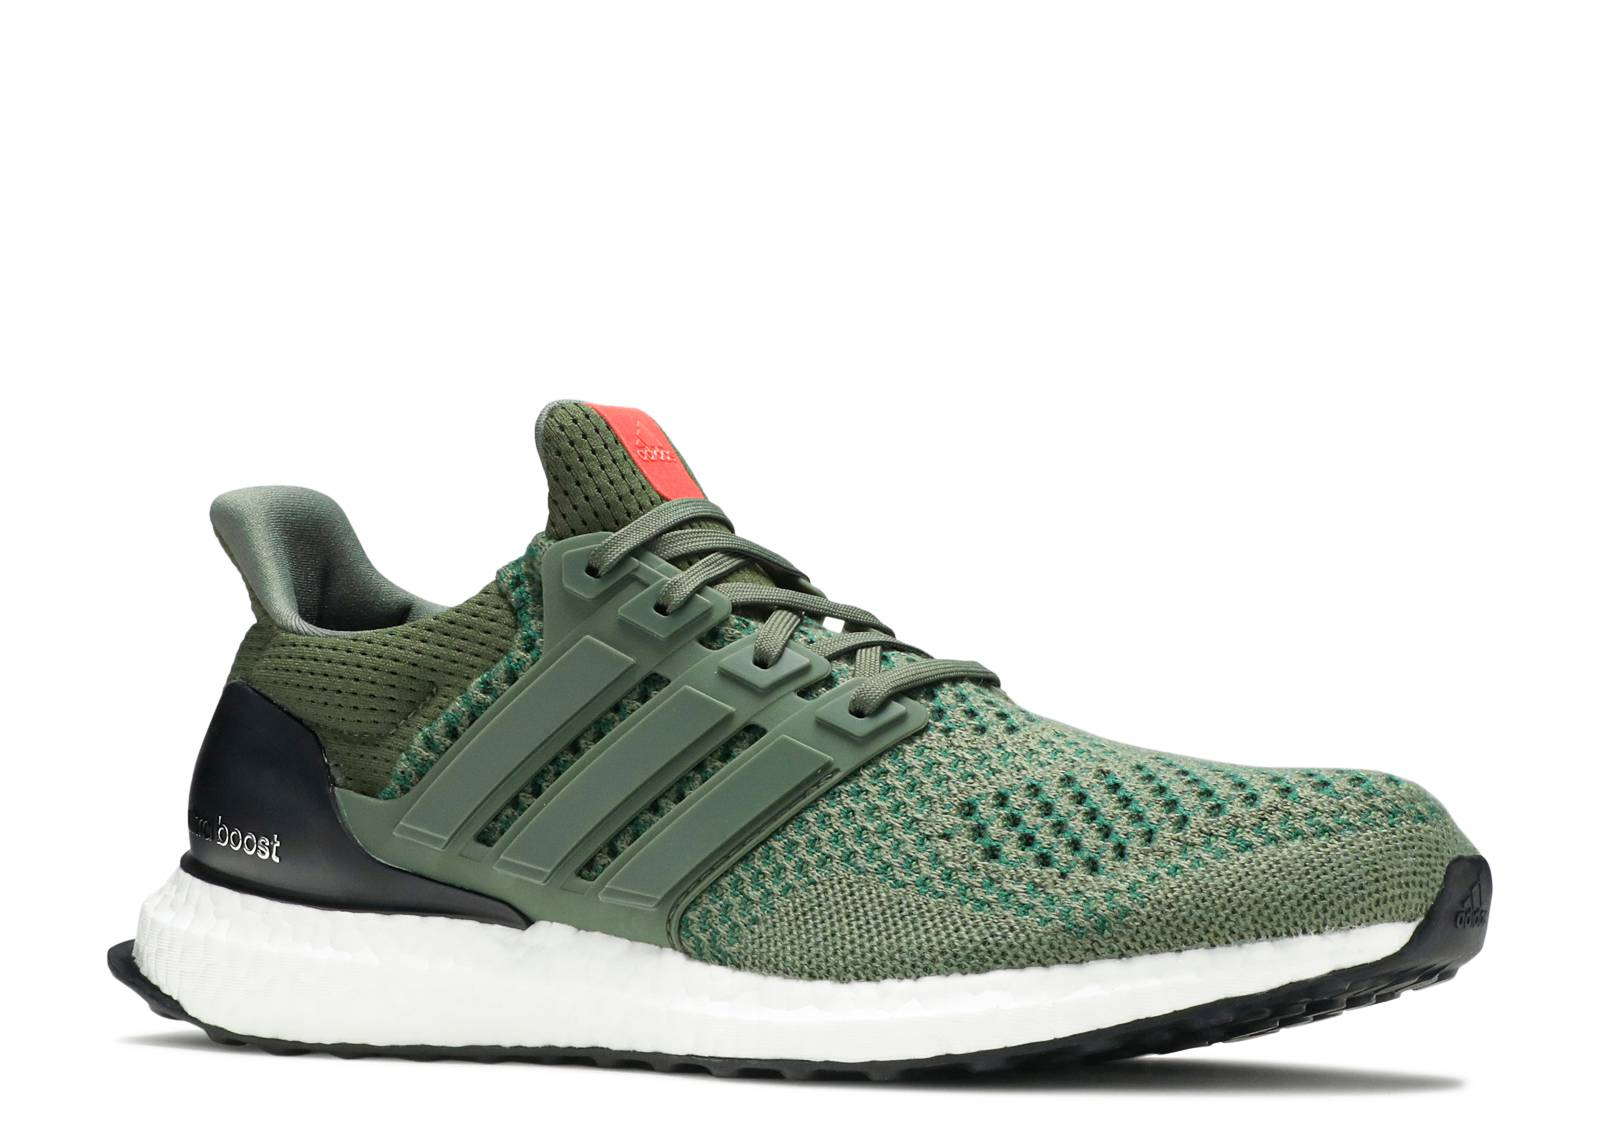 Accordo astratto approvare  UltraBoost 1.0 Limited 'Olive' - Adidas - AF5837 - base green | Flight Club